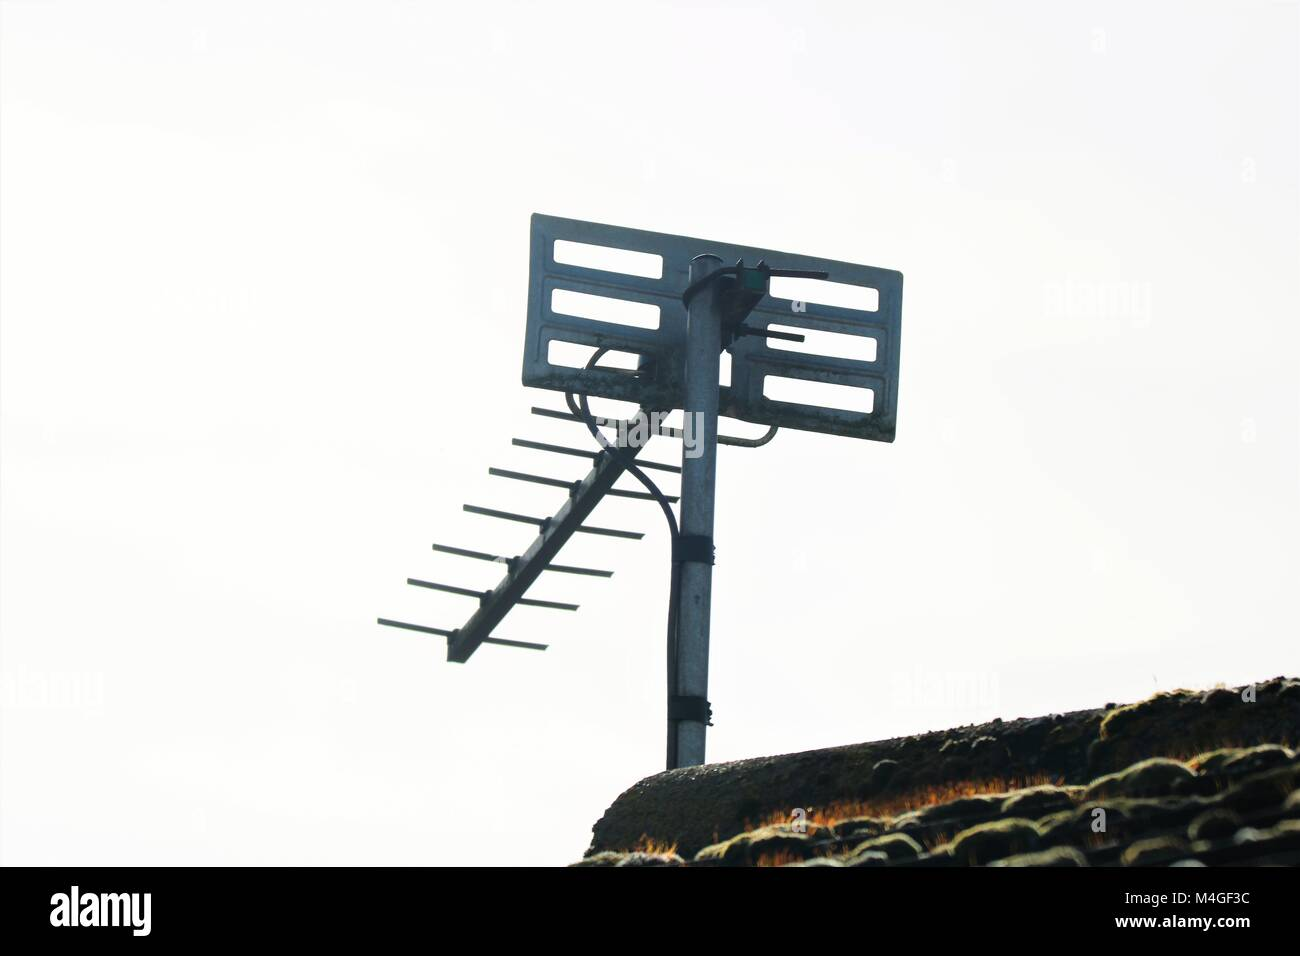 TV aerial on gable end of a moss covered tiled roof - Stock Image